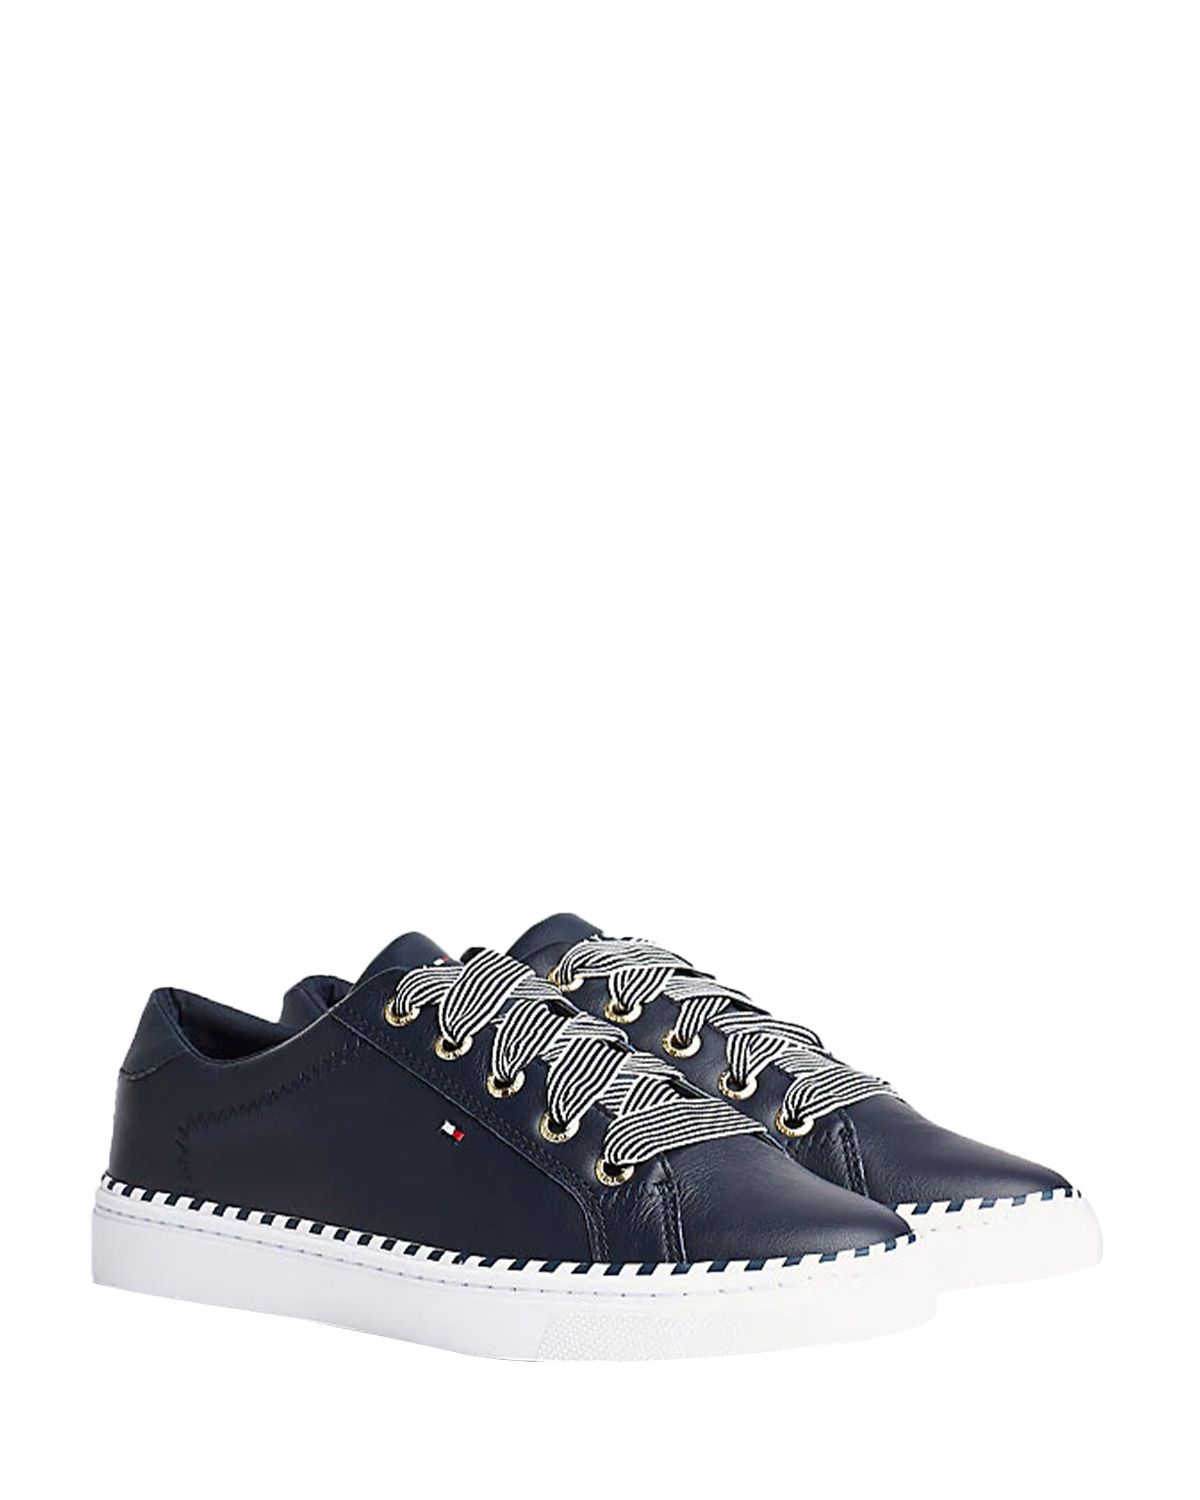 Tommy Hilfiger Nautical Lace Up Sneaker Kadın Sneakers FW0FW04689 Navy Blue